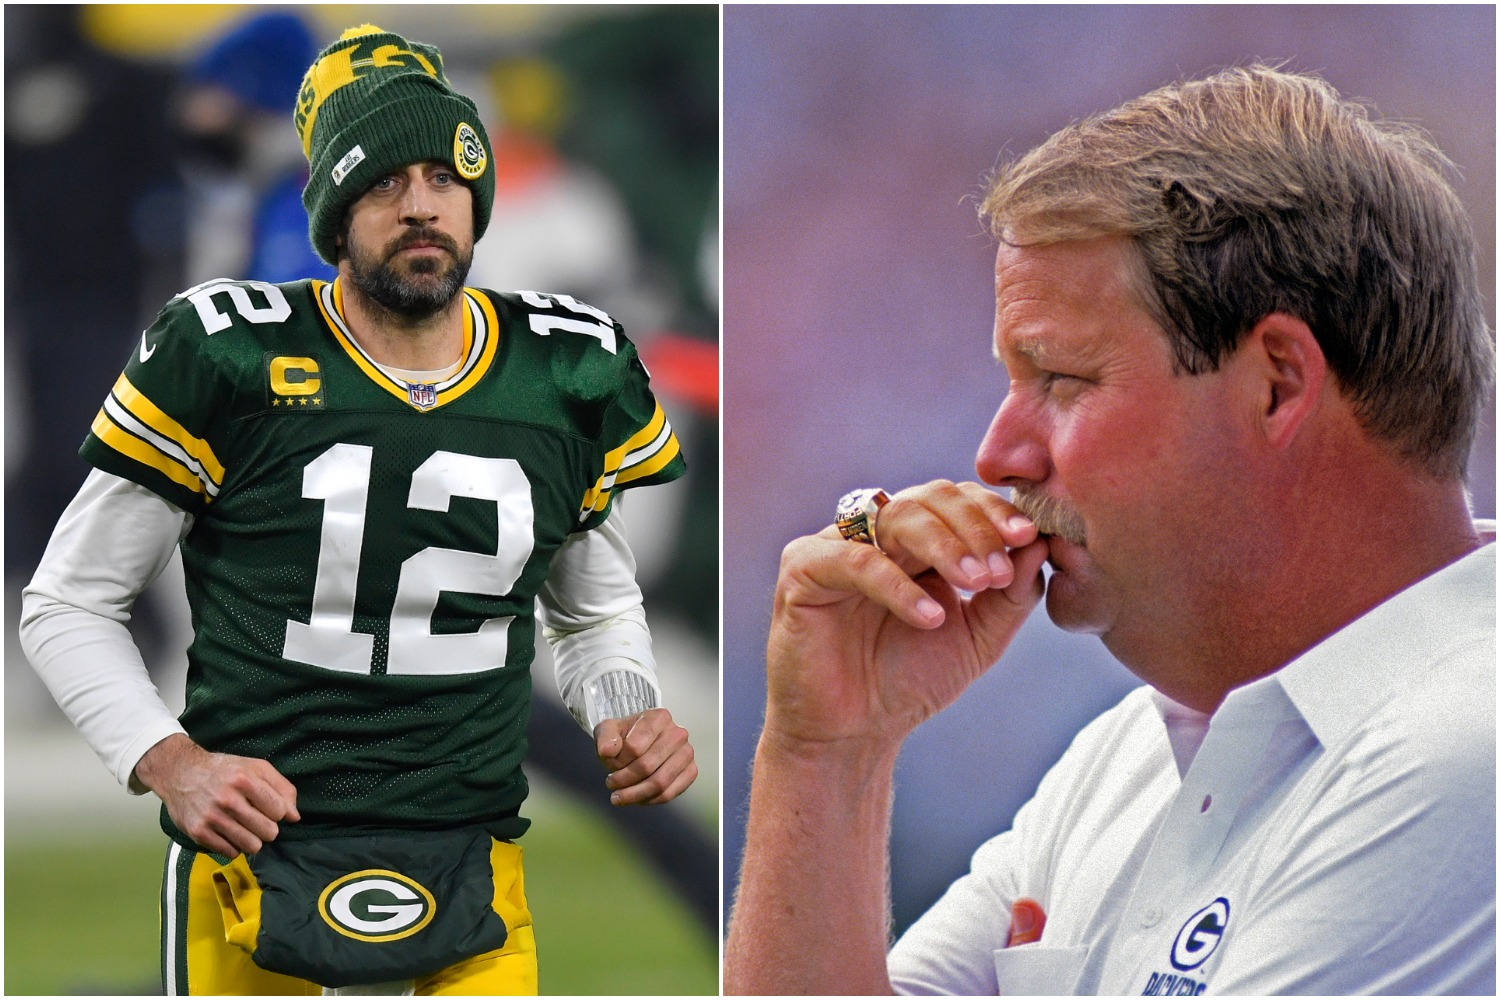 Aaron Rodgers jogs off the field as former Green Bay Packers coach Mike Holmgren looks on.